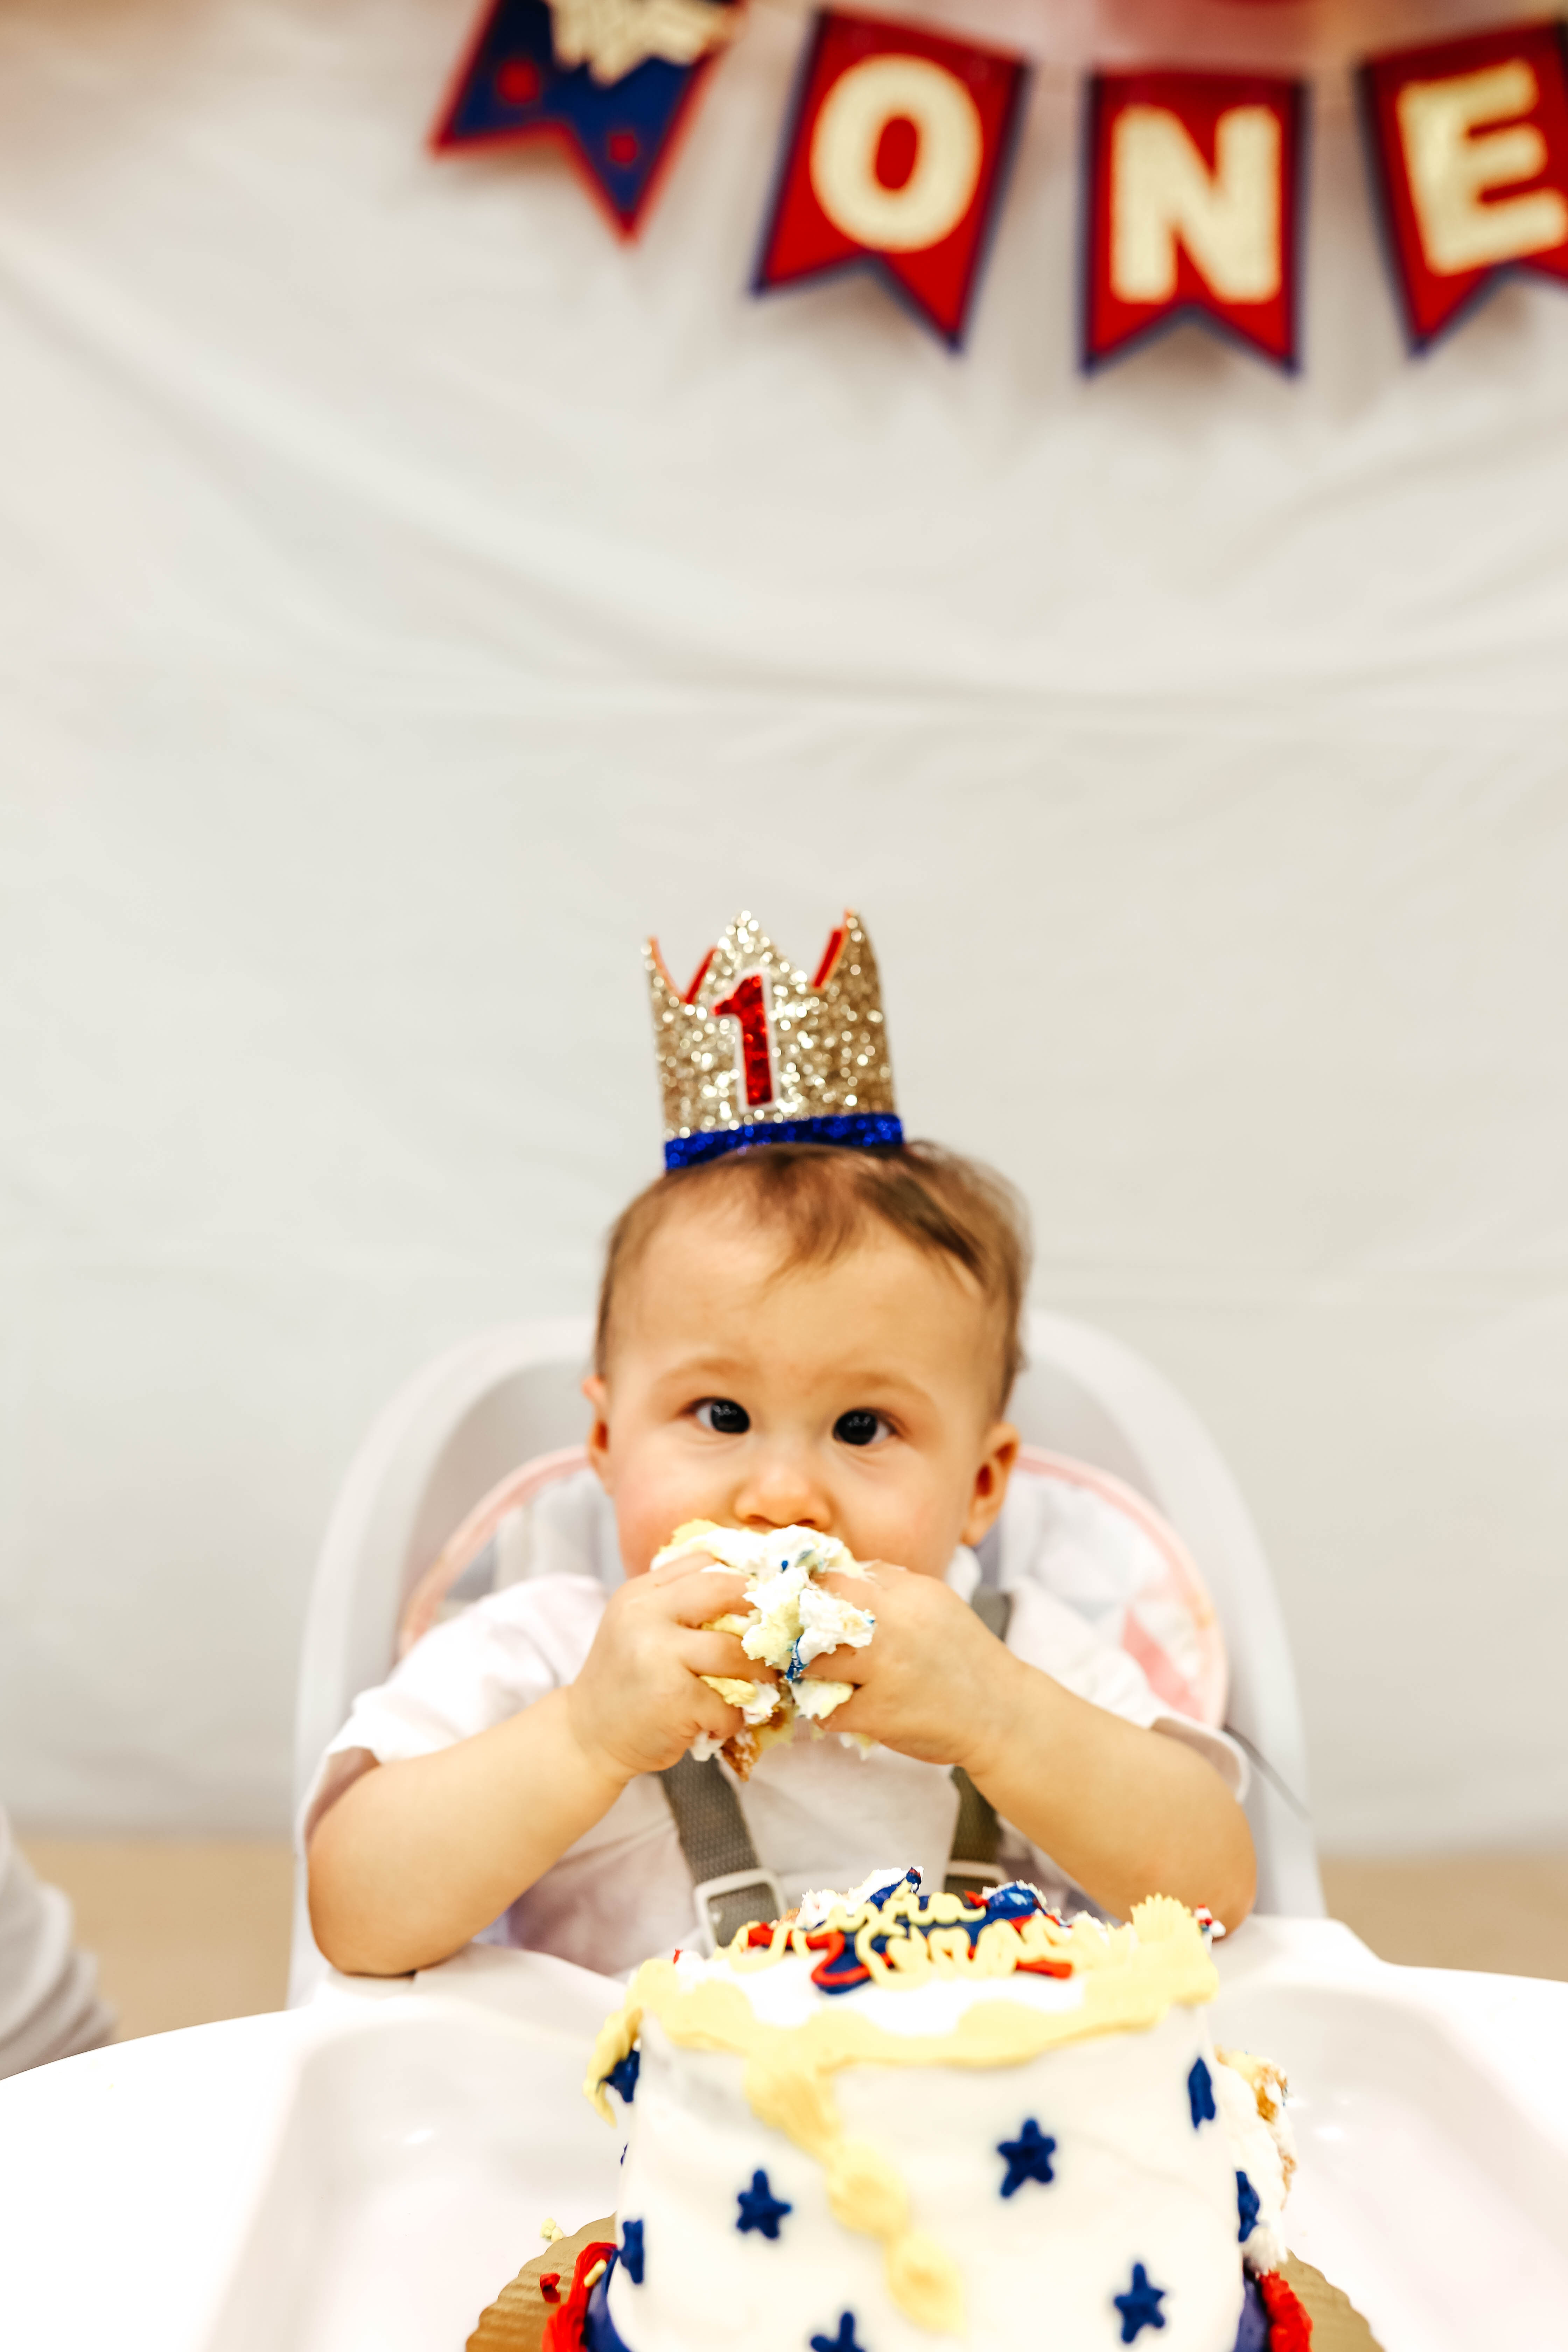 ONEder Woman 1st Birthdy Party for Olivia Grace - eating smash cake on Coming Up Roses